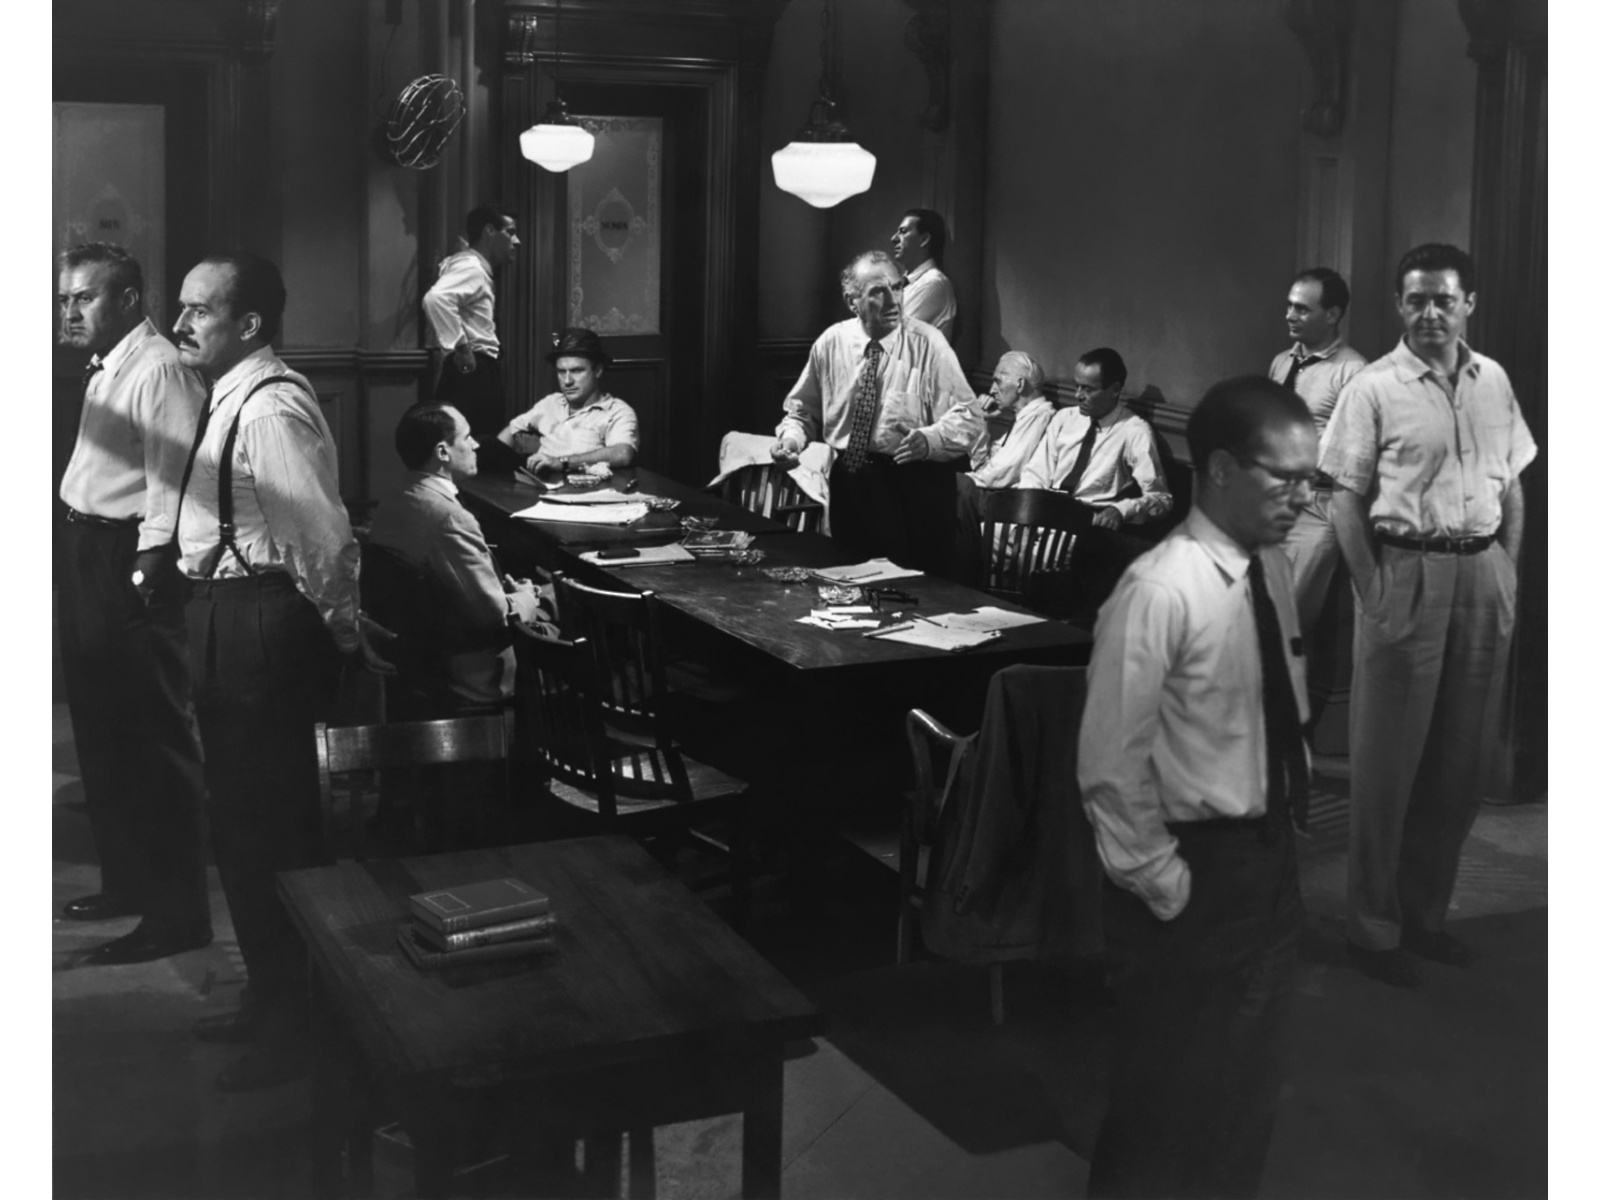 12 Angry Men Wallpaper and Background Image 1600x1200 ID 1600x1200